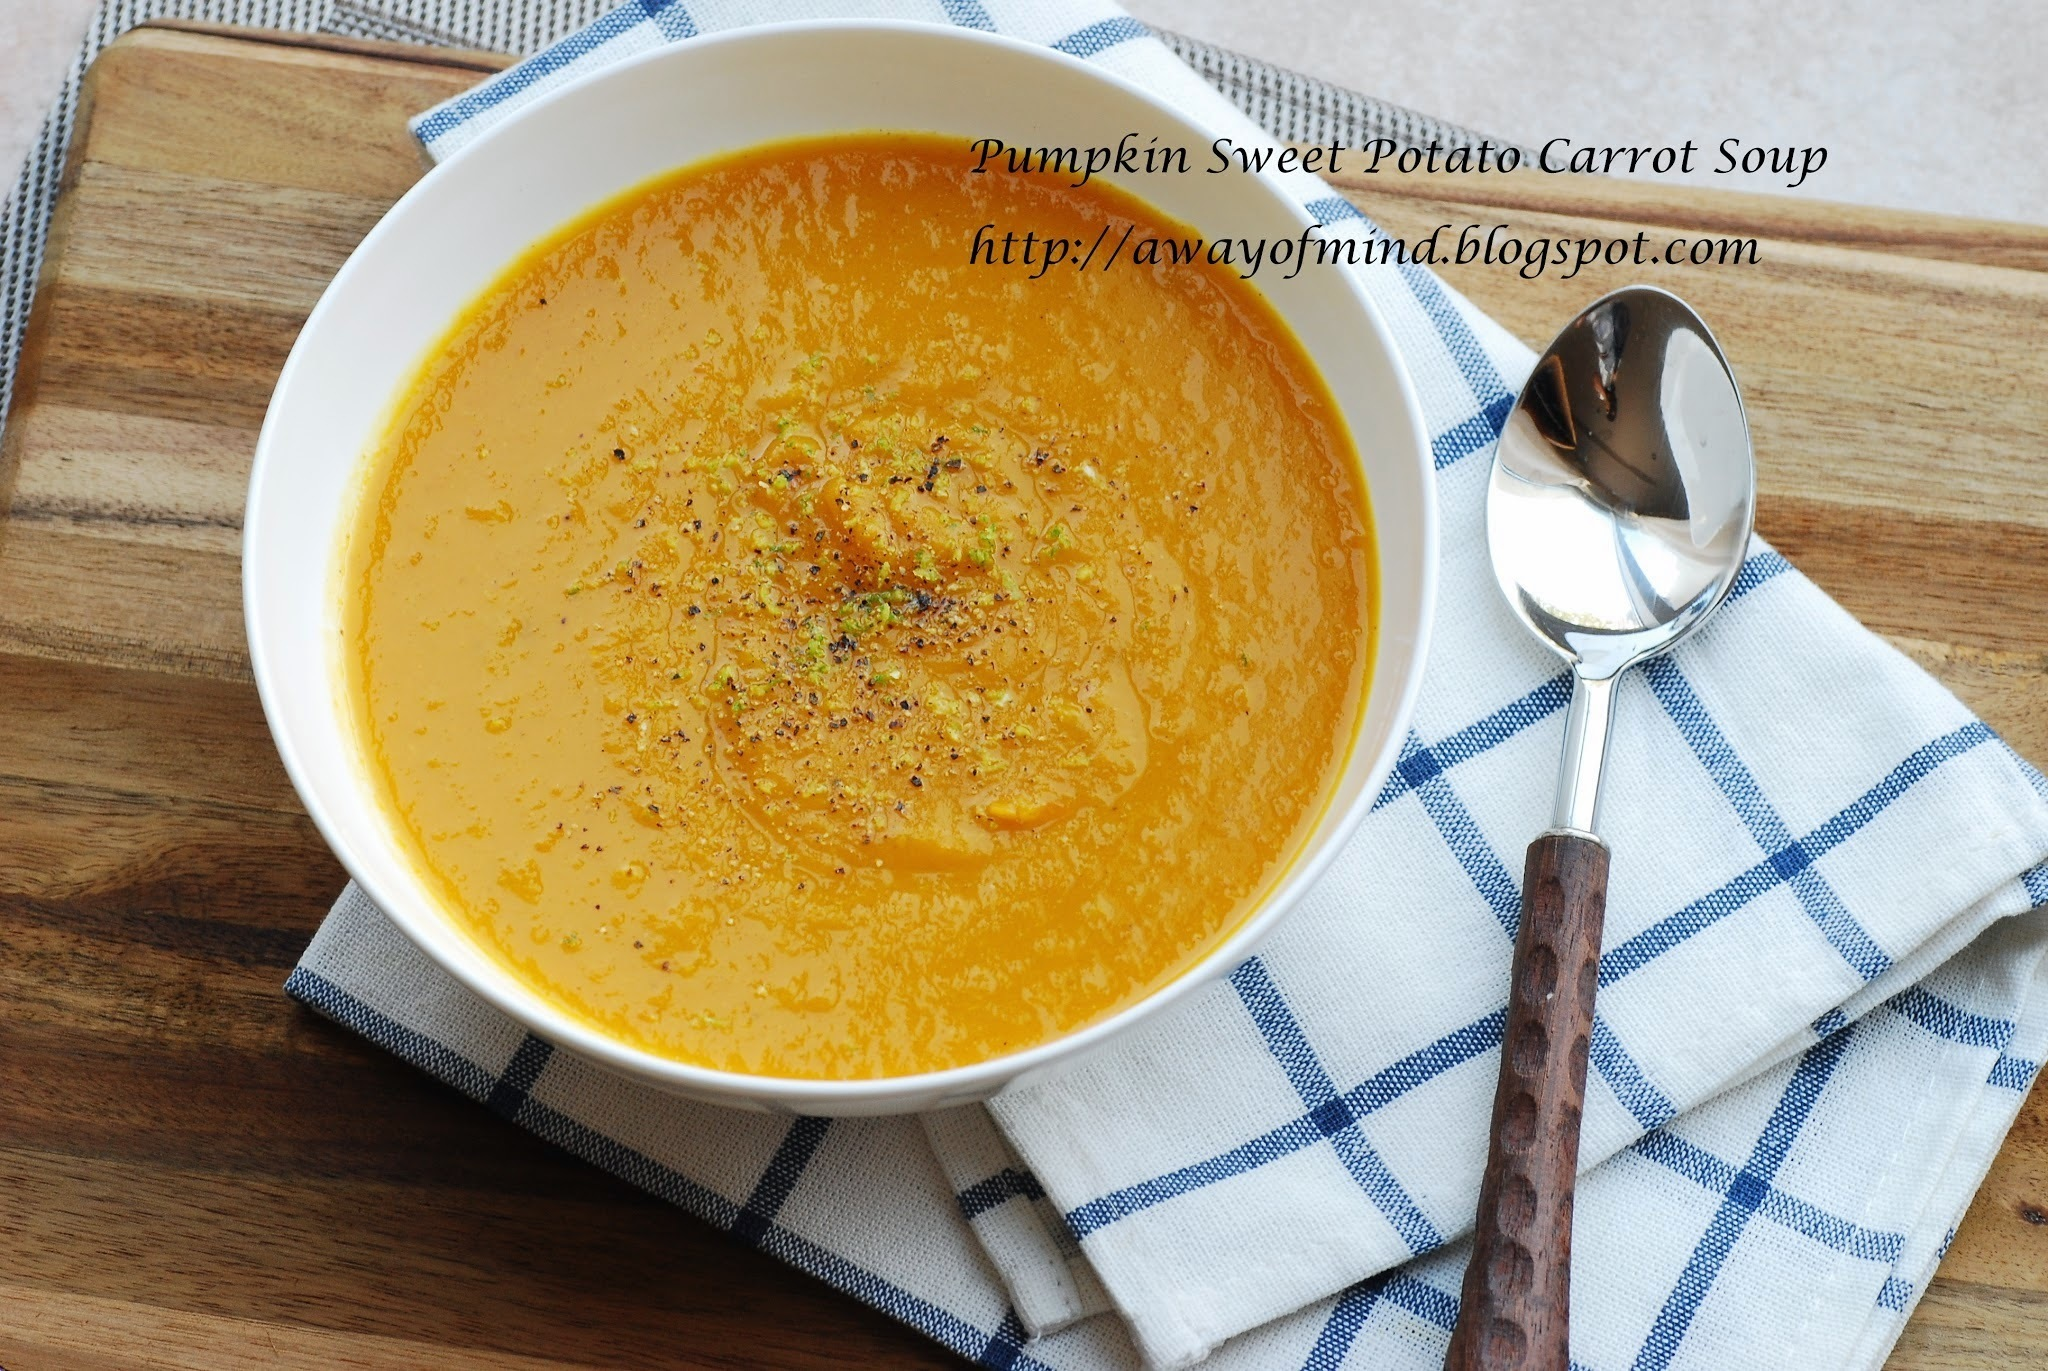 Pumpkin Sweet Potato Carrot Soup